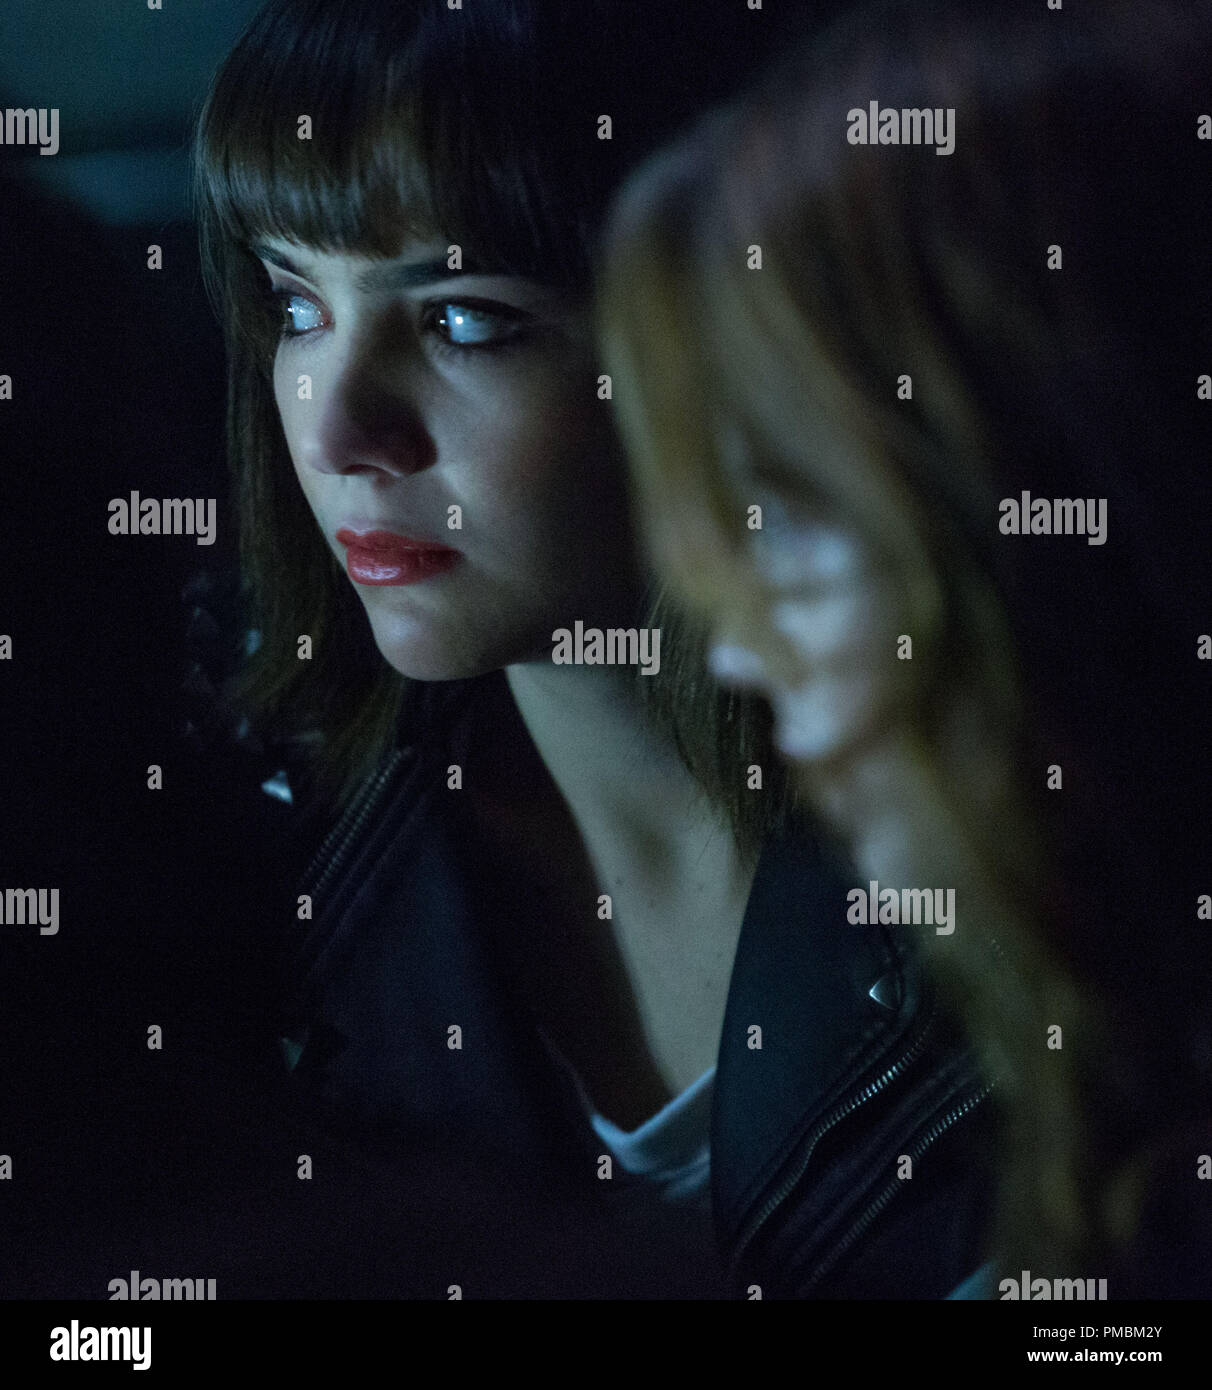 ANA COTO stars as Sarah in 'Ouija', a supernatural thriller about a group of friends who must confront their most terrifying fears when they awaken the dark powers of an ancient spirit board. - Stock Image